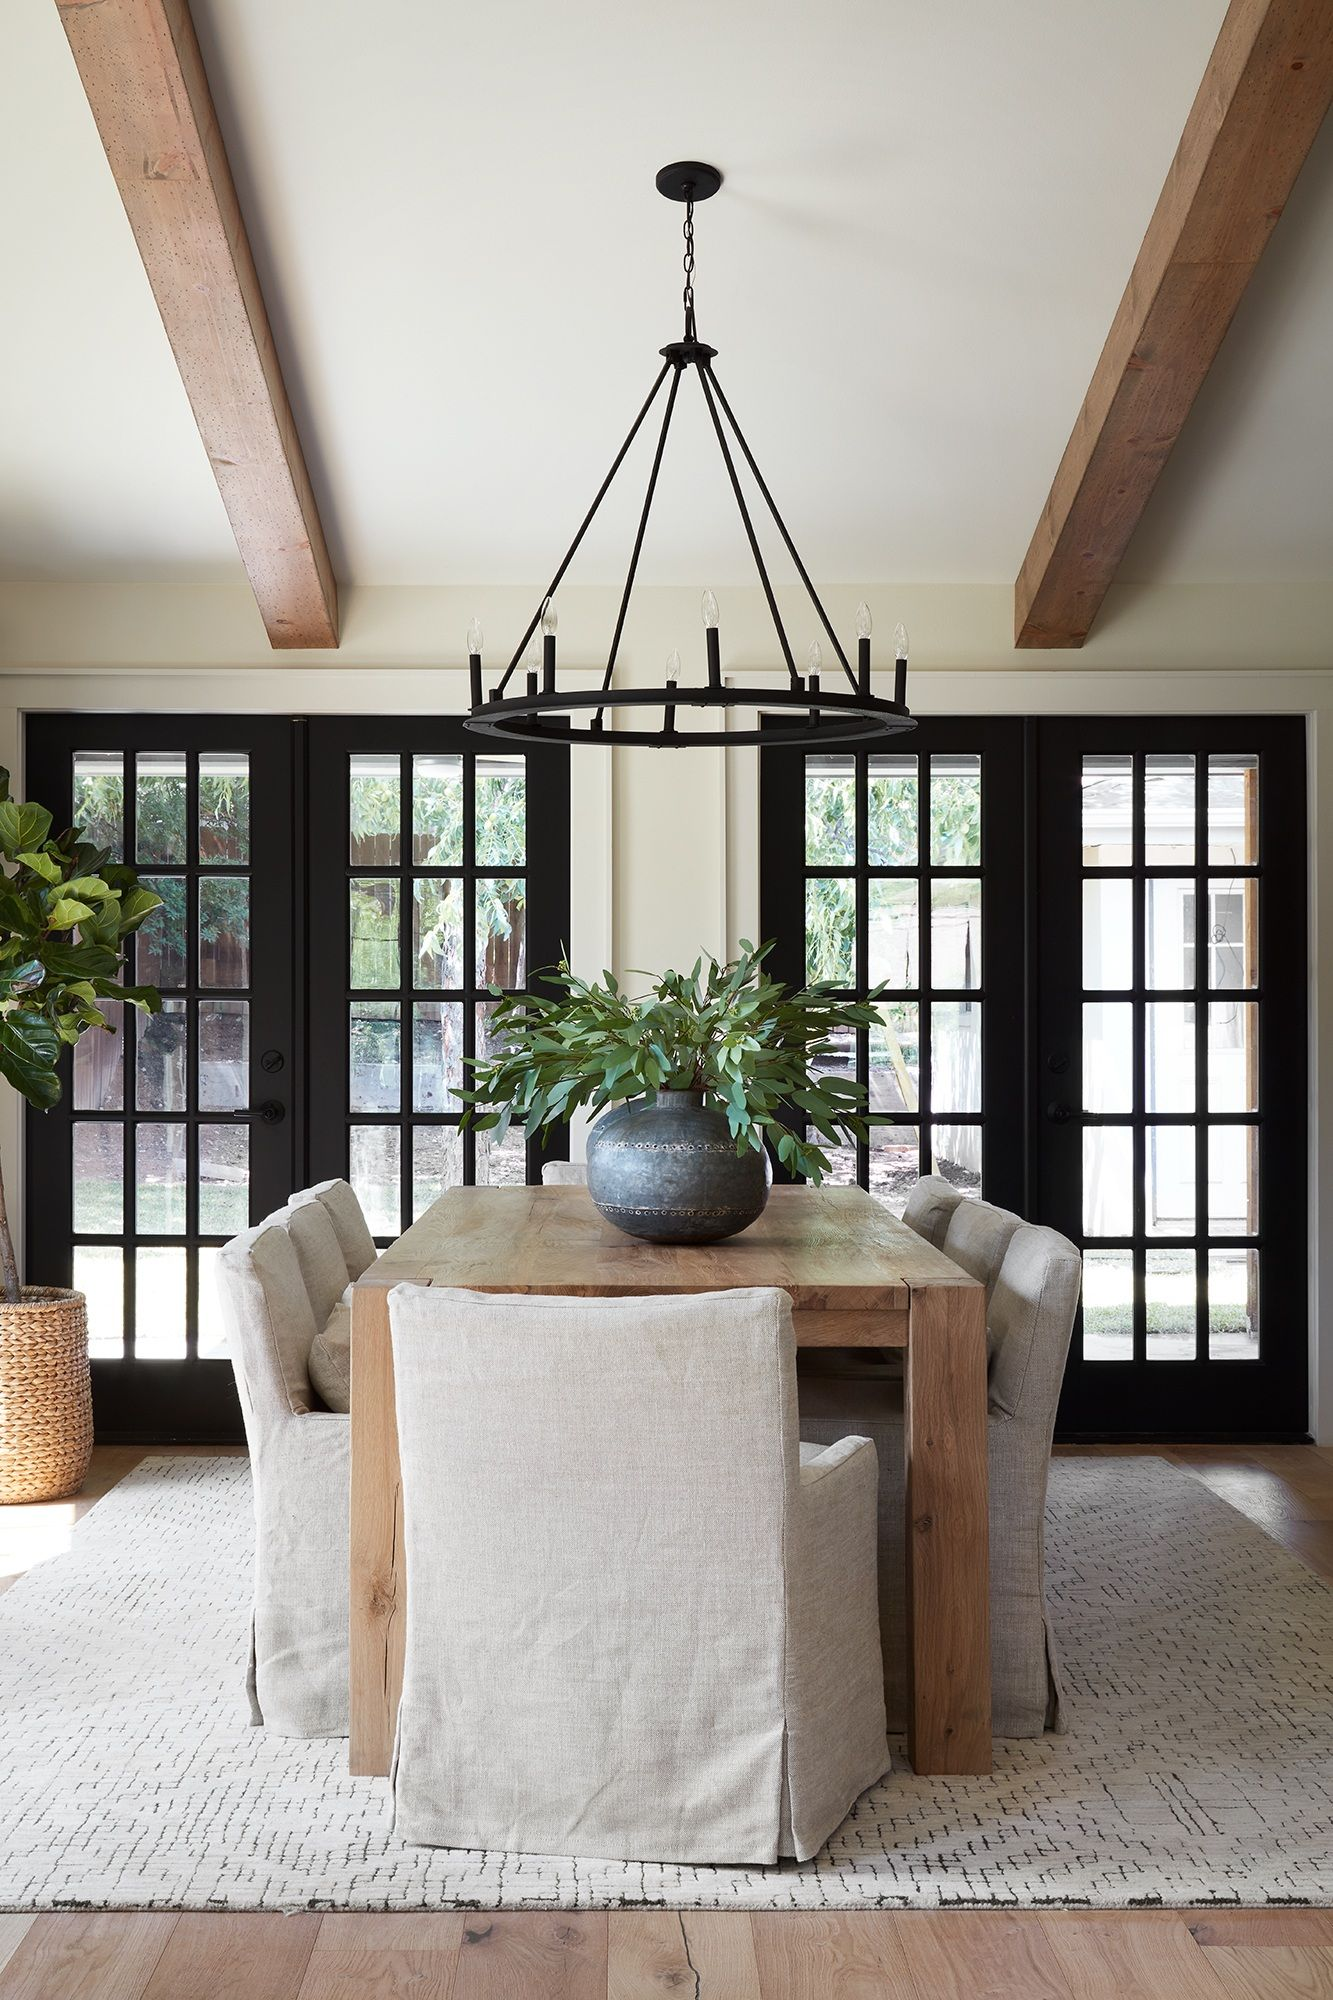 Sitting Rooms Dining Table CenterpiecesDining